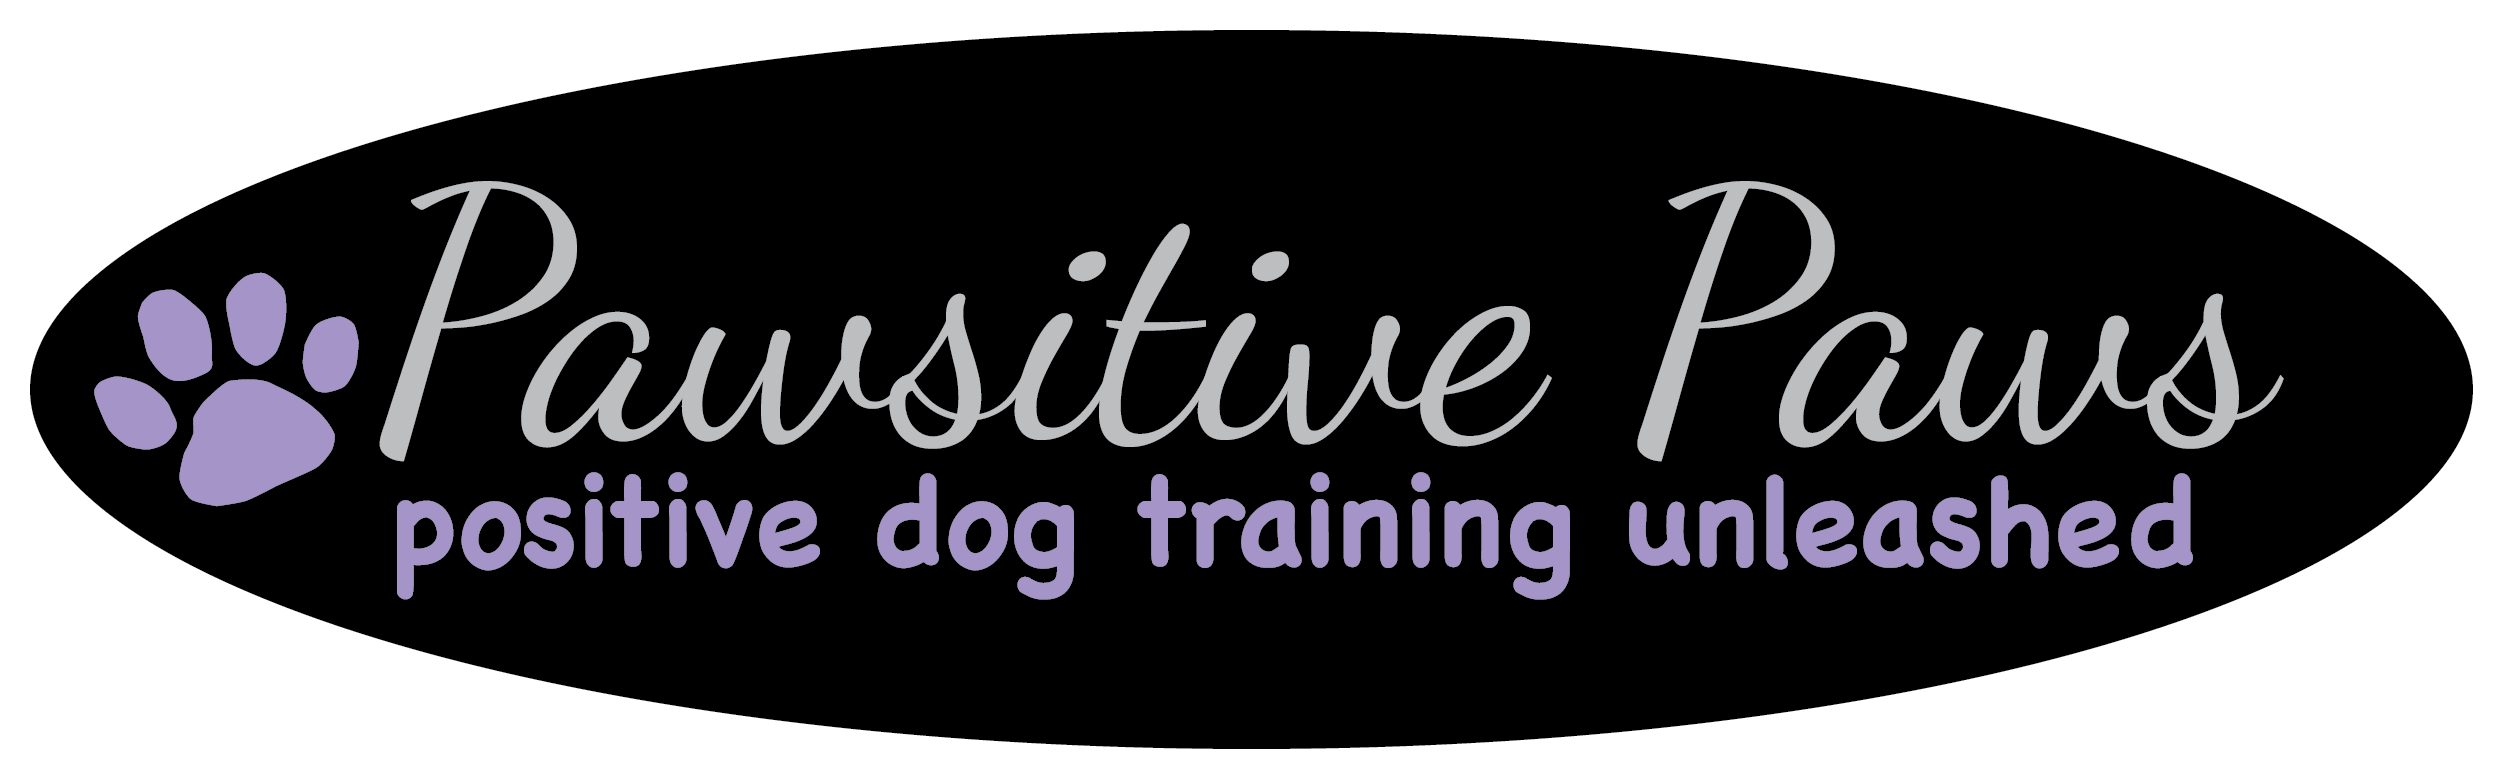 Positive Dog Training Unleashed